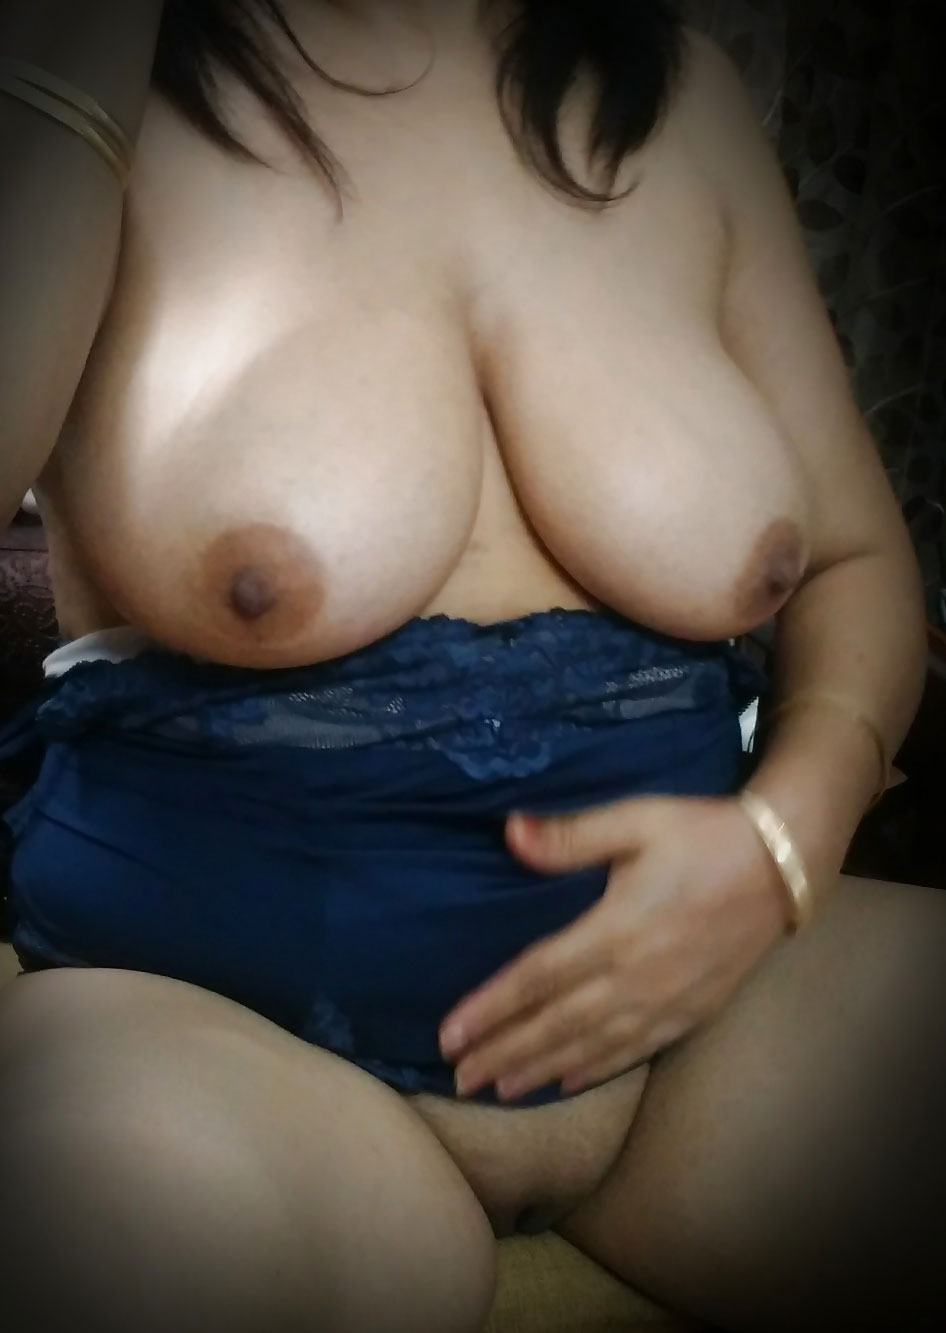 Big busty nude desi girls accept. The